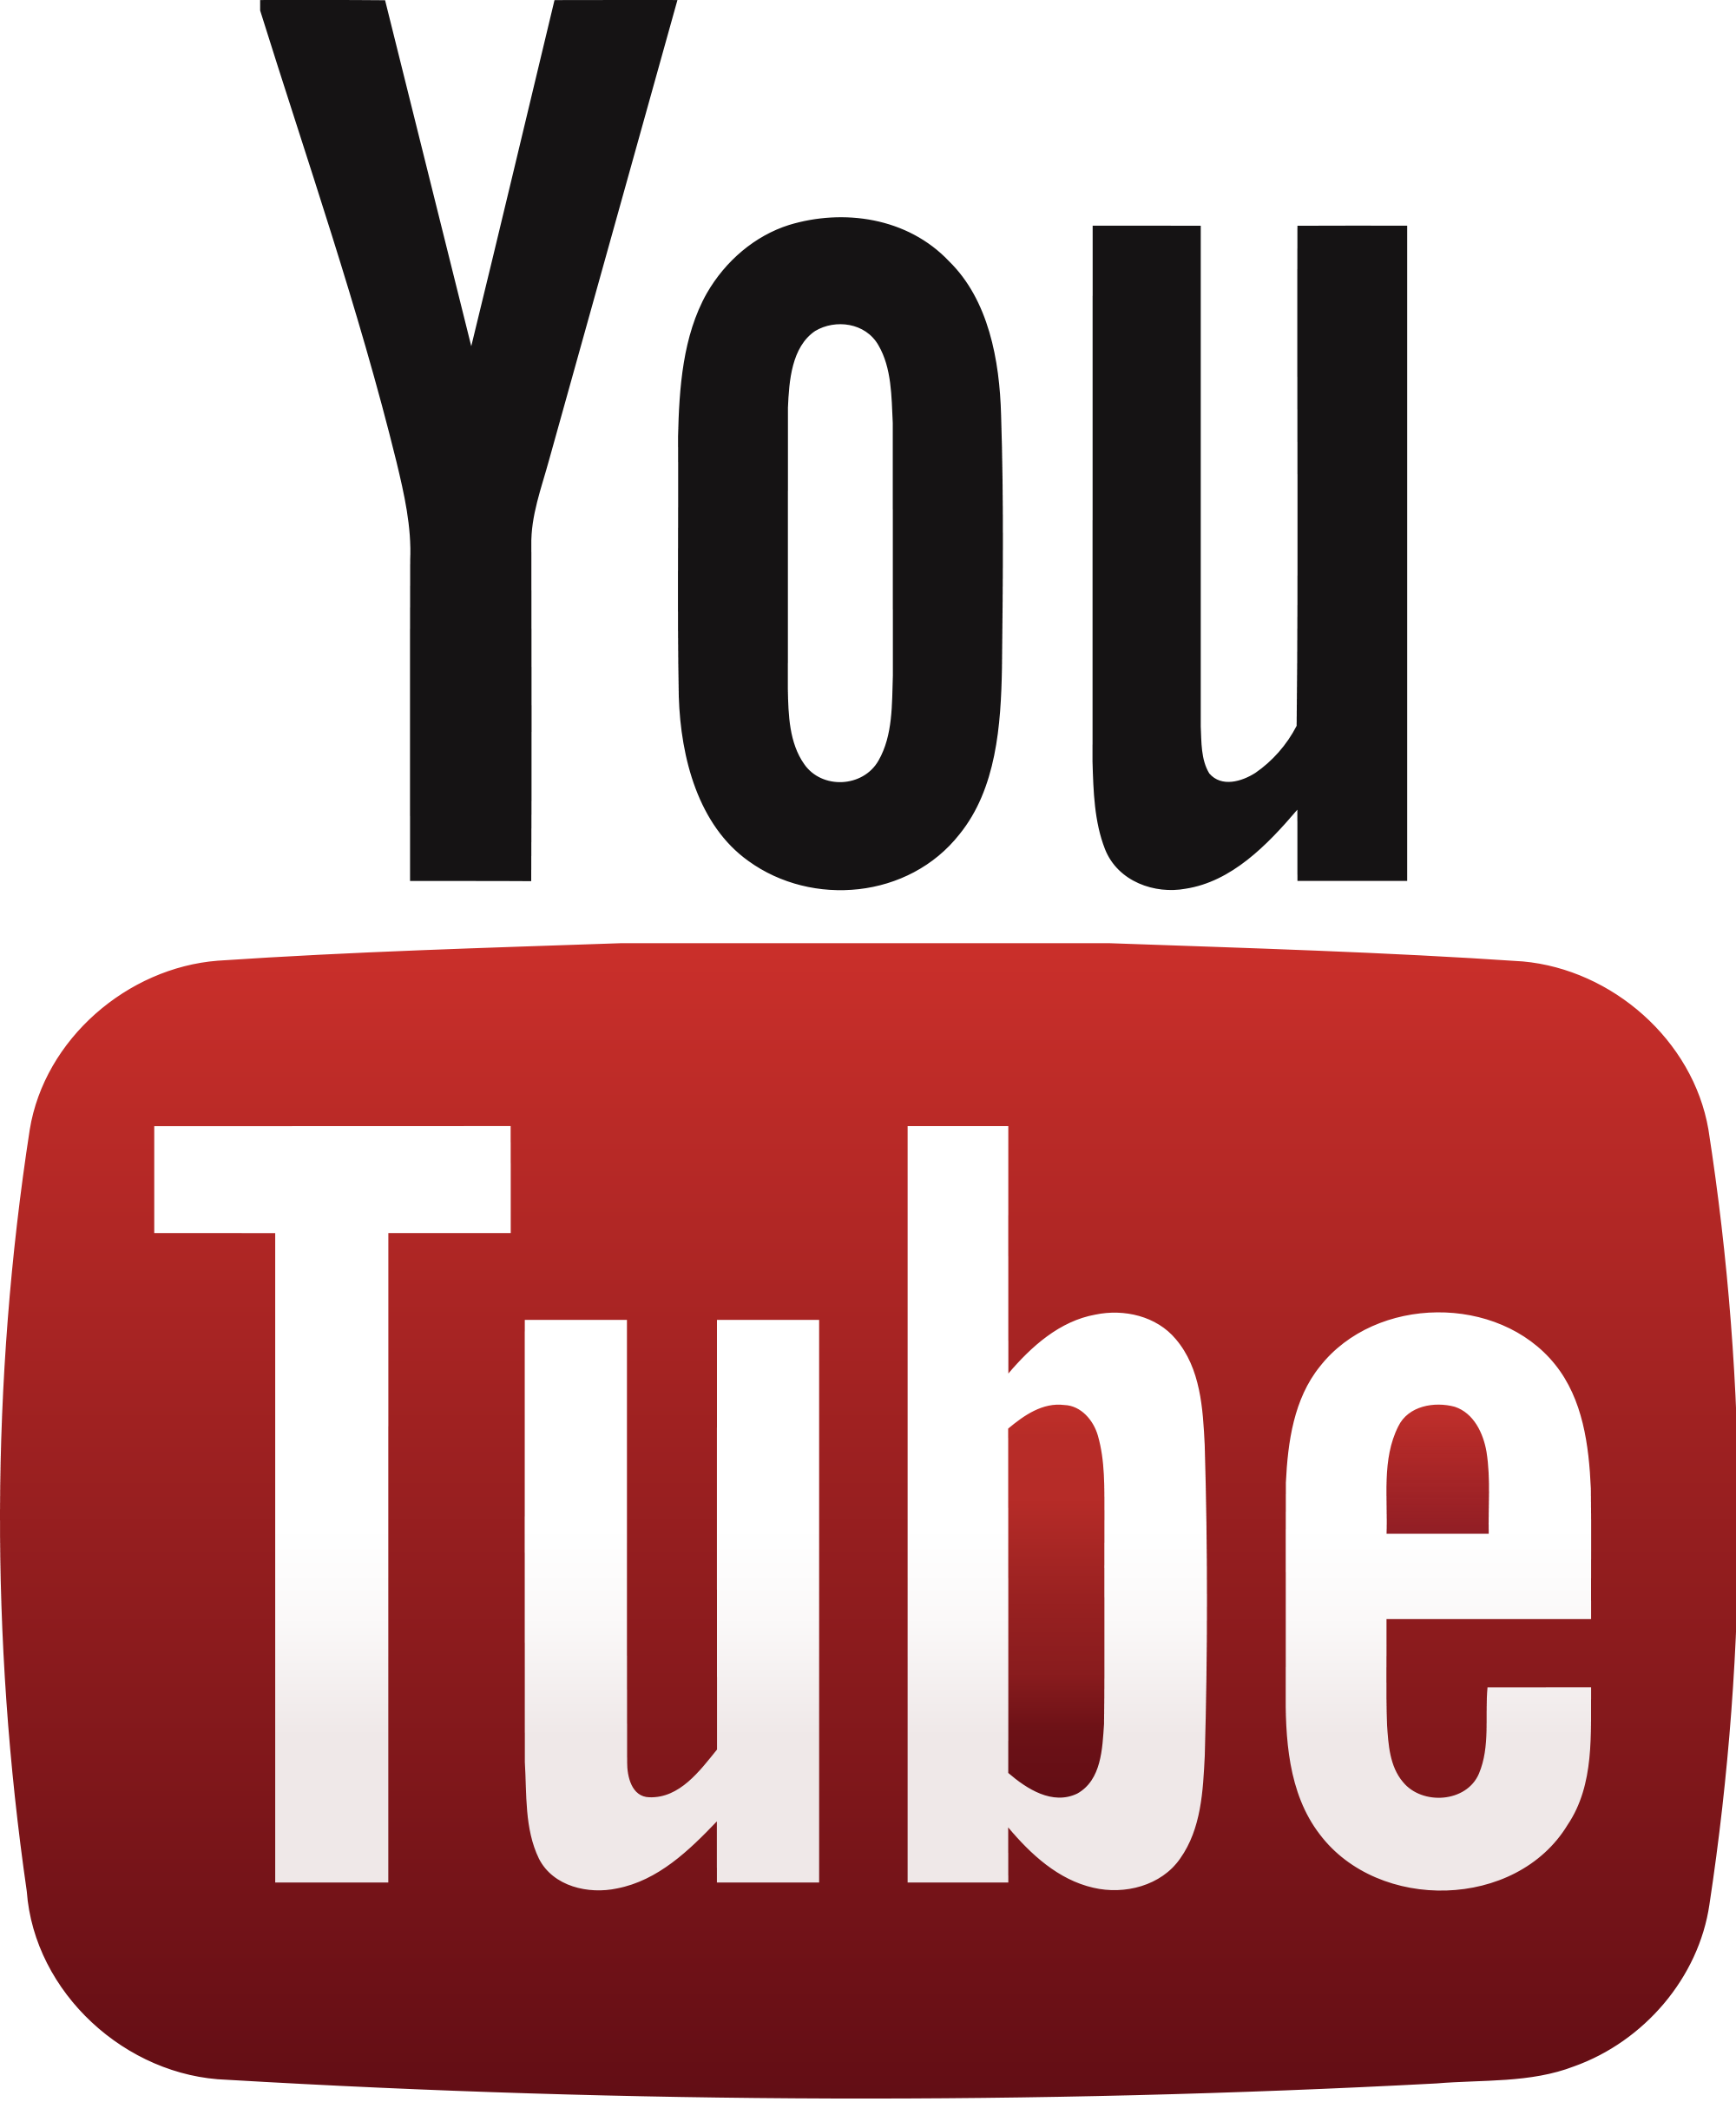 http://www.freeiconspng.com/uploads/youtube-logo-png-6